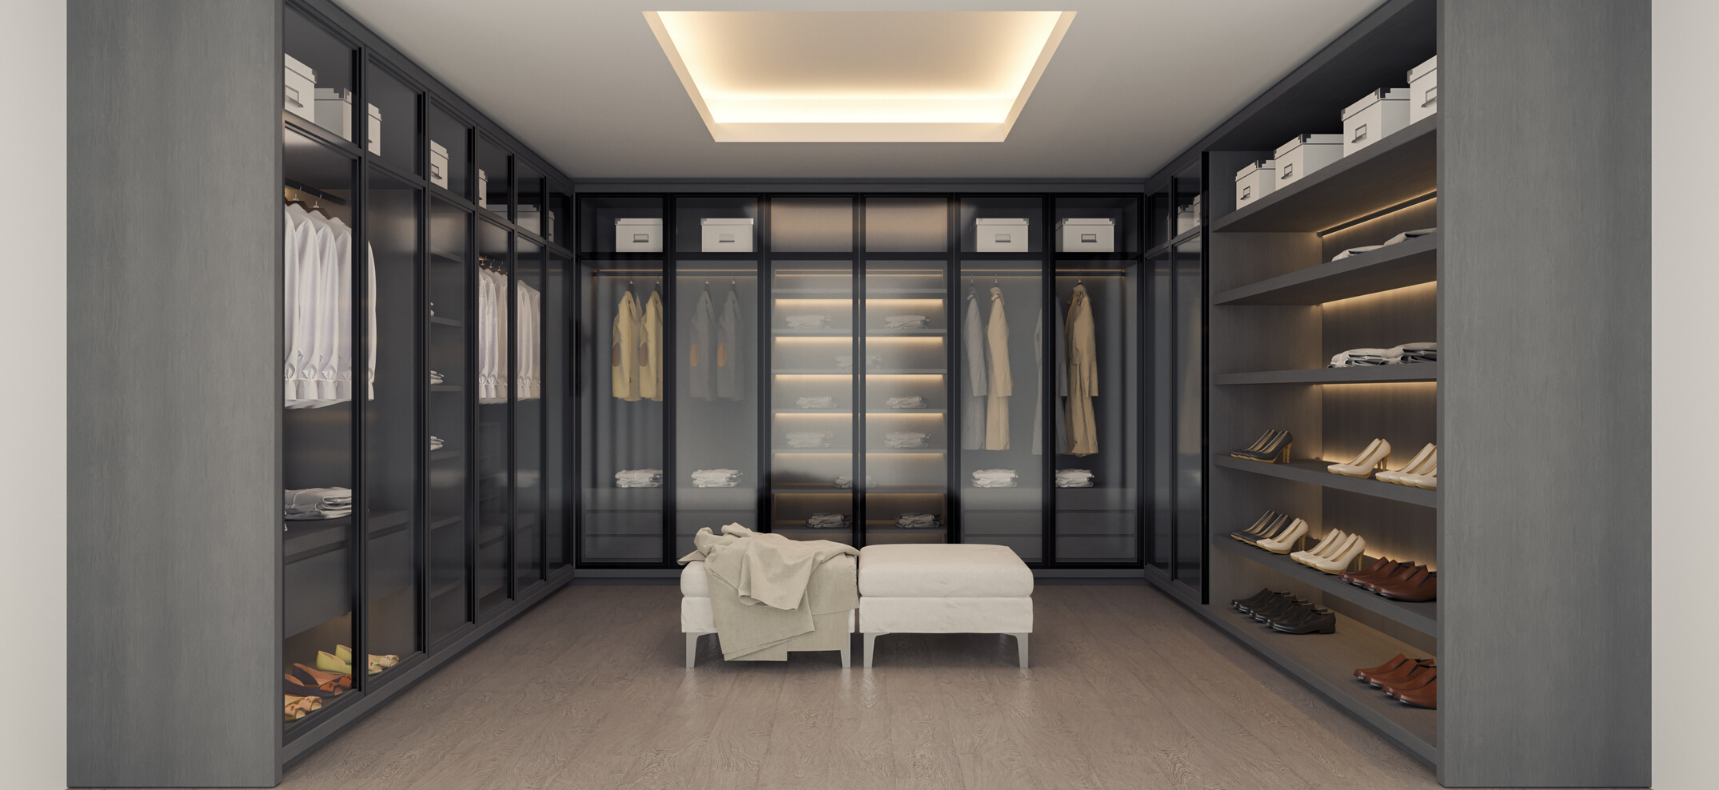 custom closets lauderdale by the sea 33308 (2)